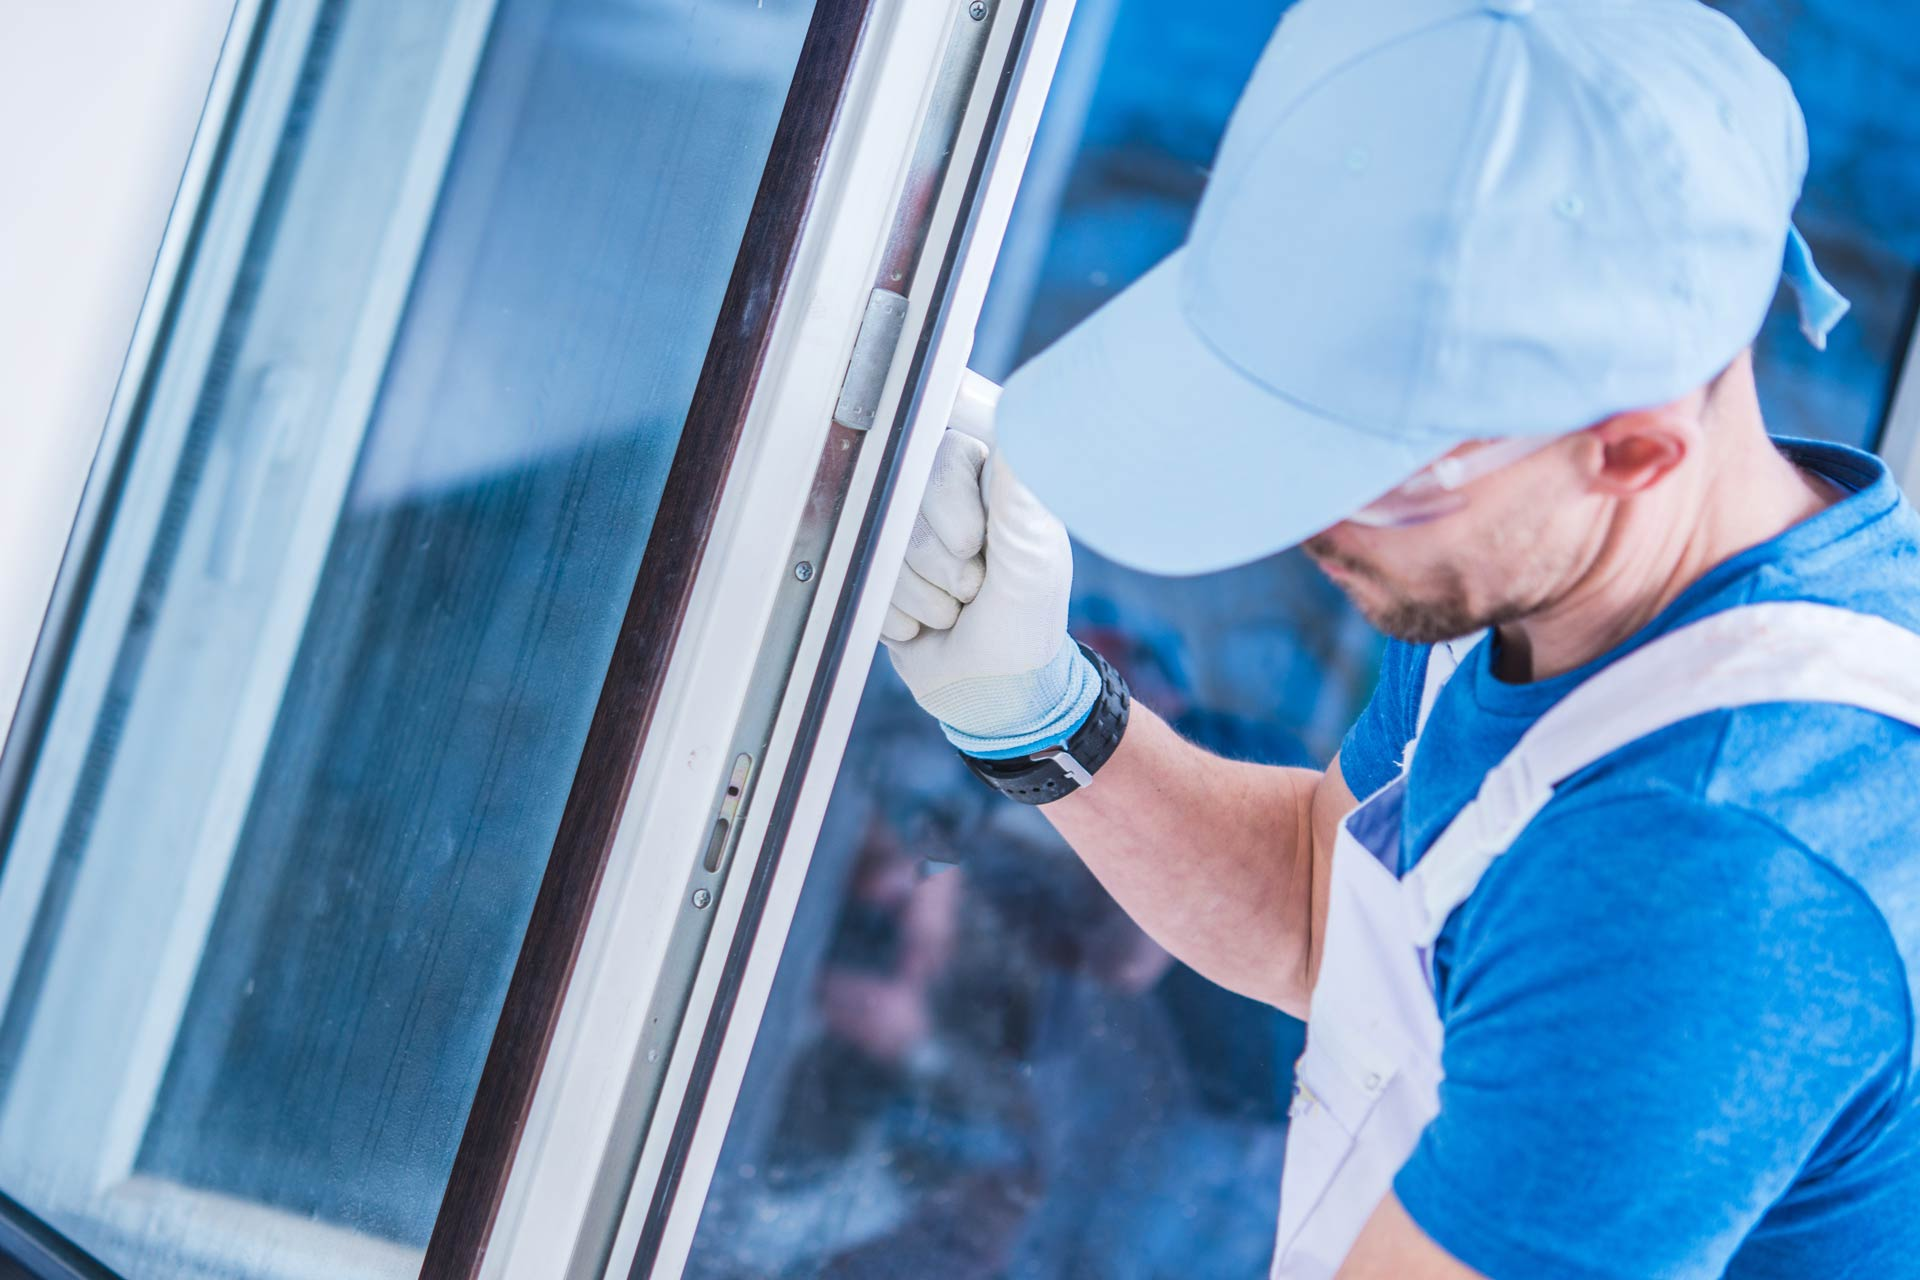 5 Things You Should Ask Before Choosing a Windows and Doors Contractor